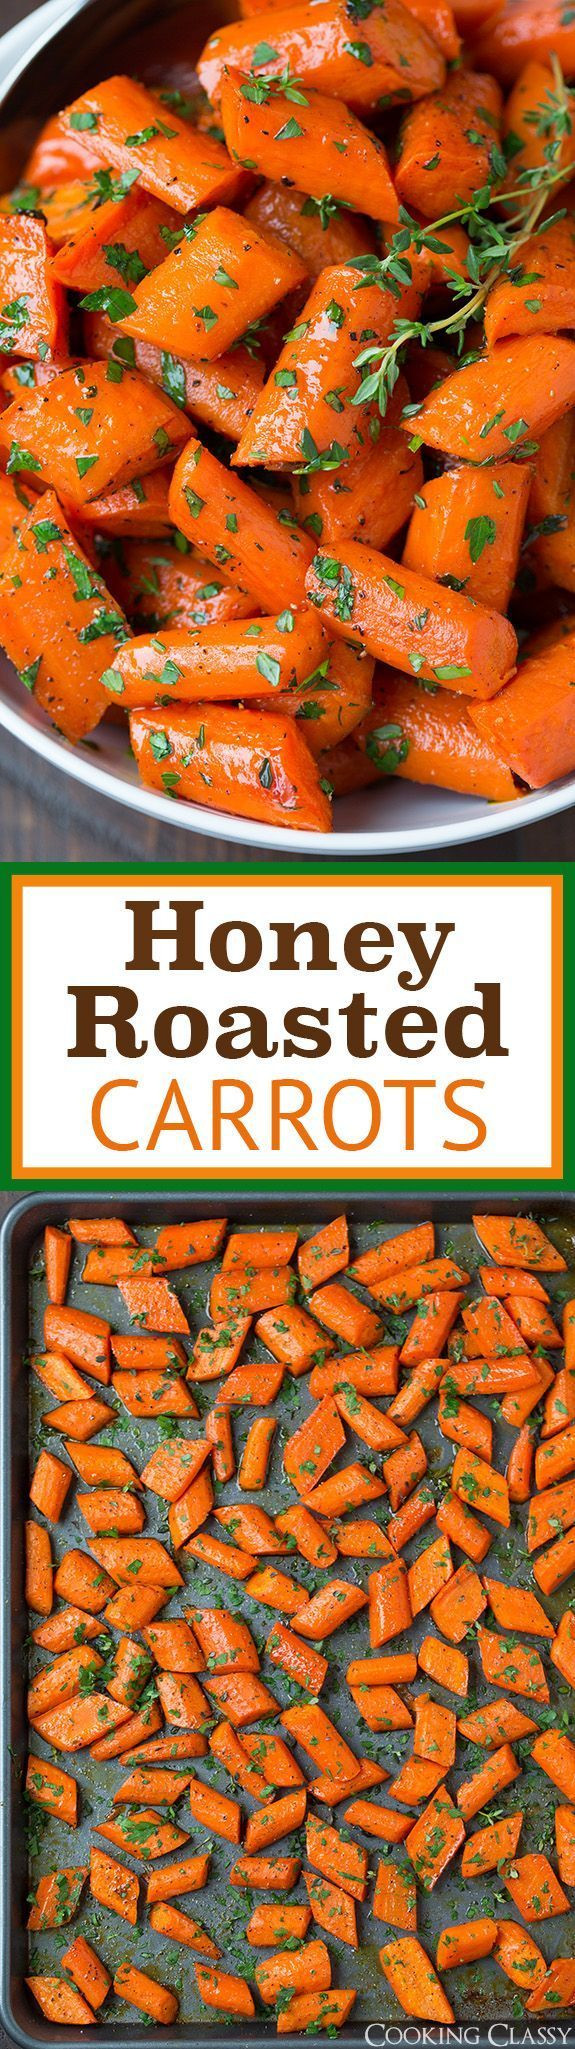 Thanksgiving Carrot Recipes  Check out Honey Roasted Carrots It s so easy to make